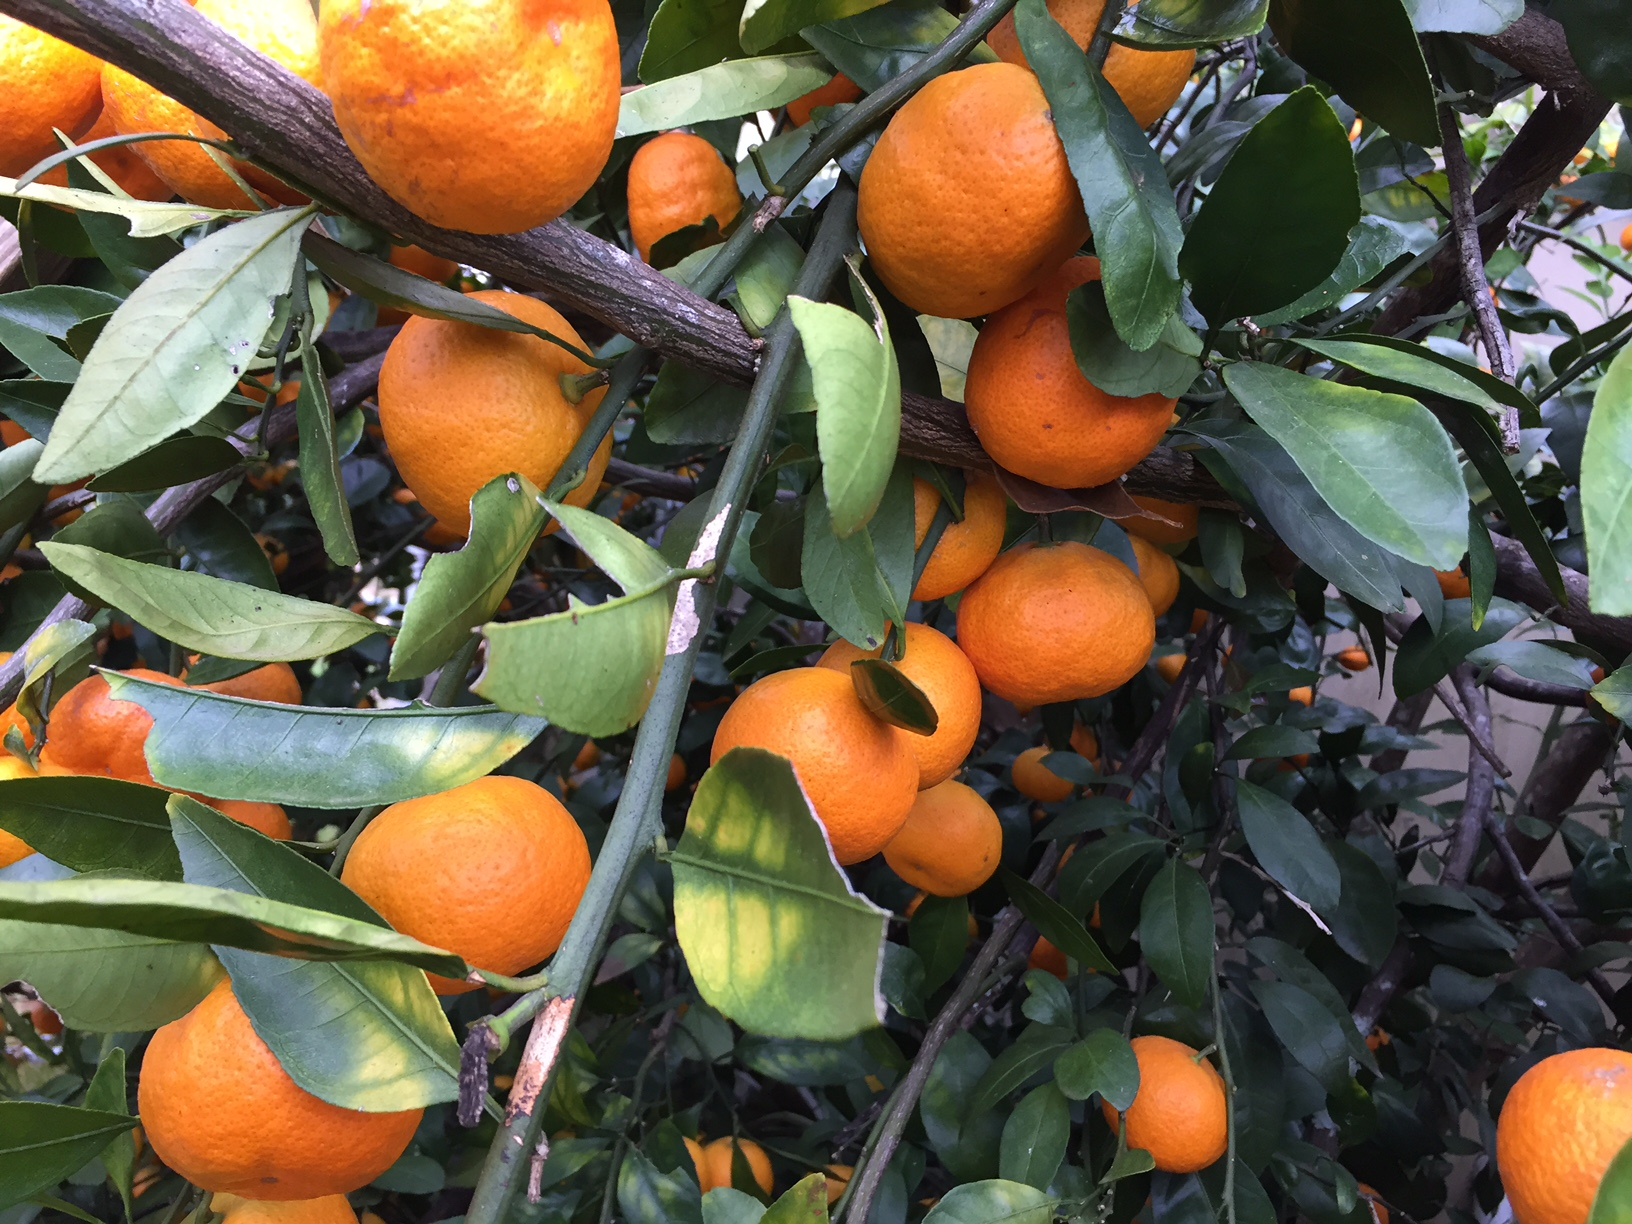 Dooryard Citrus Care for February